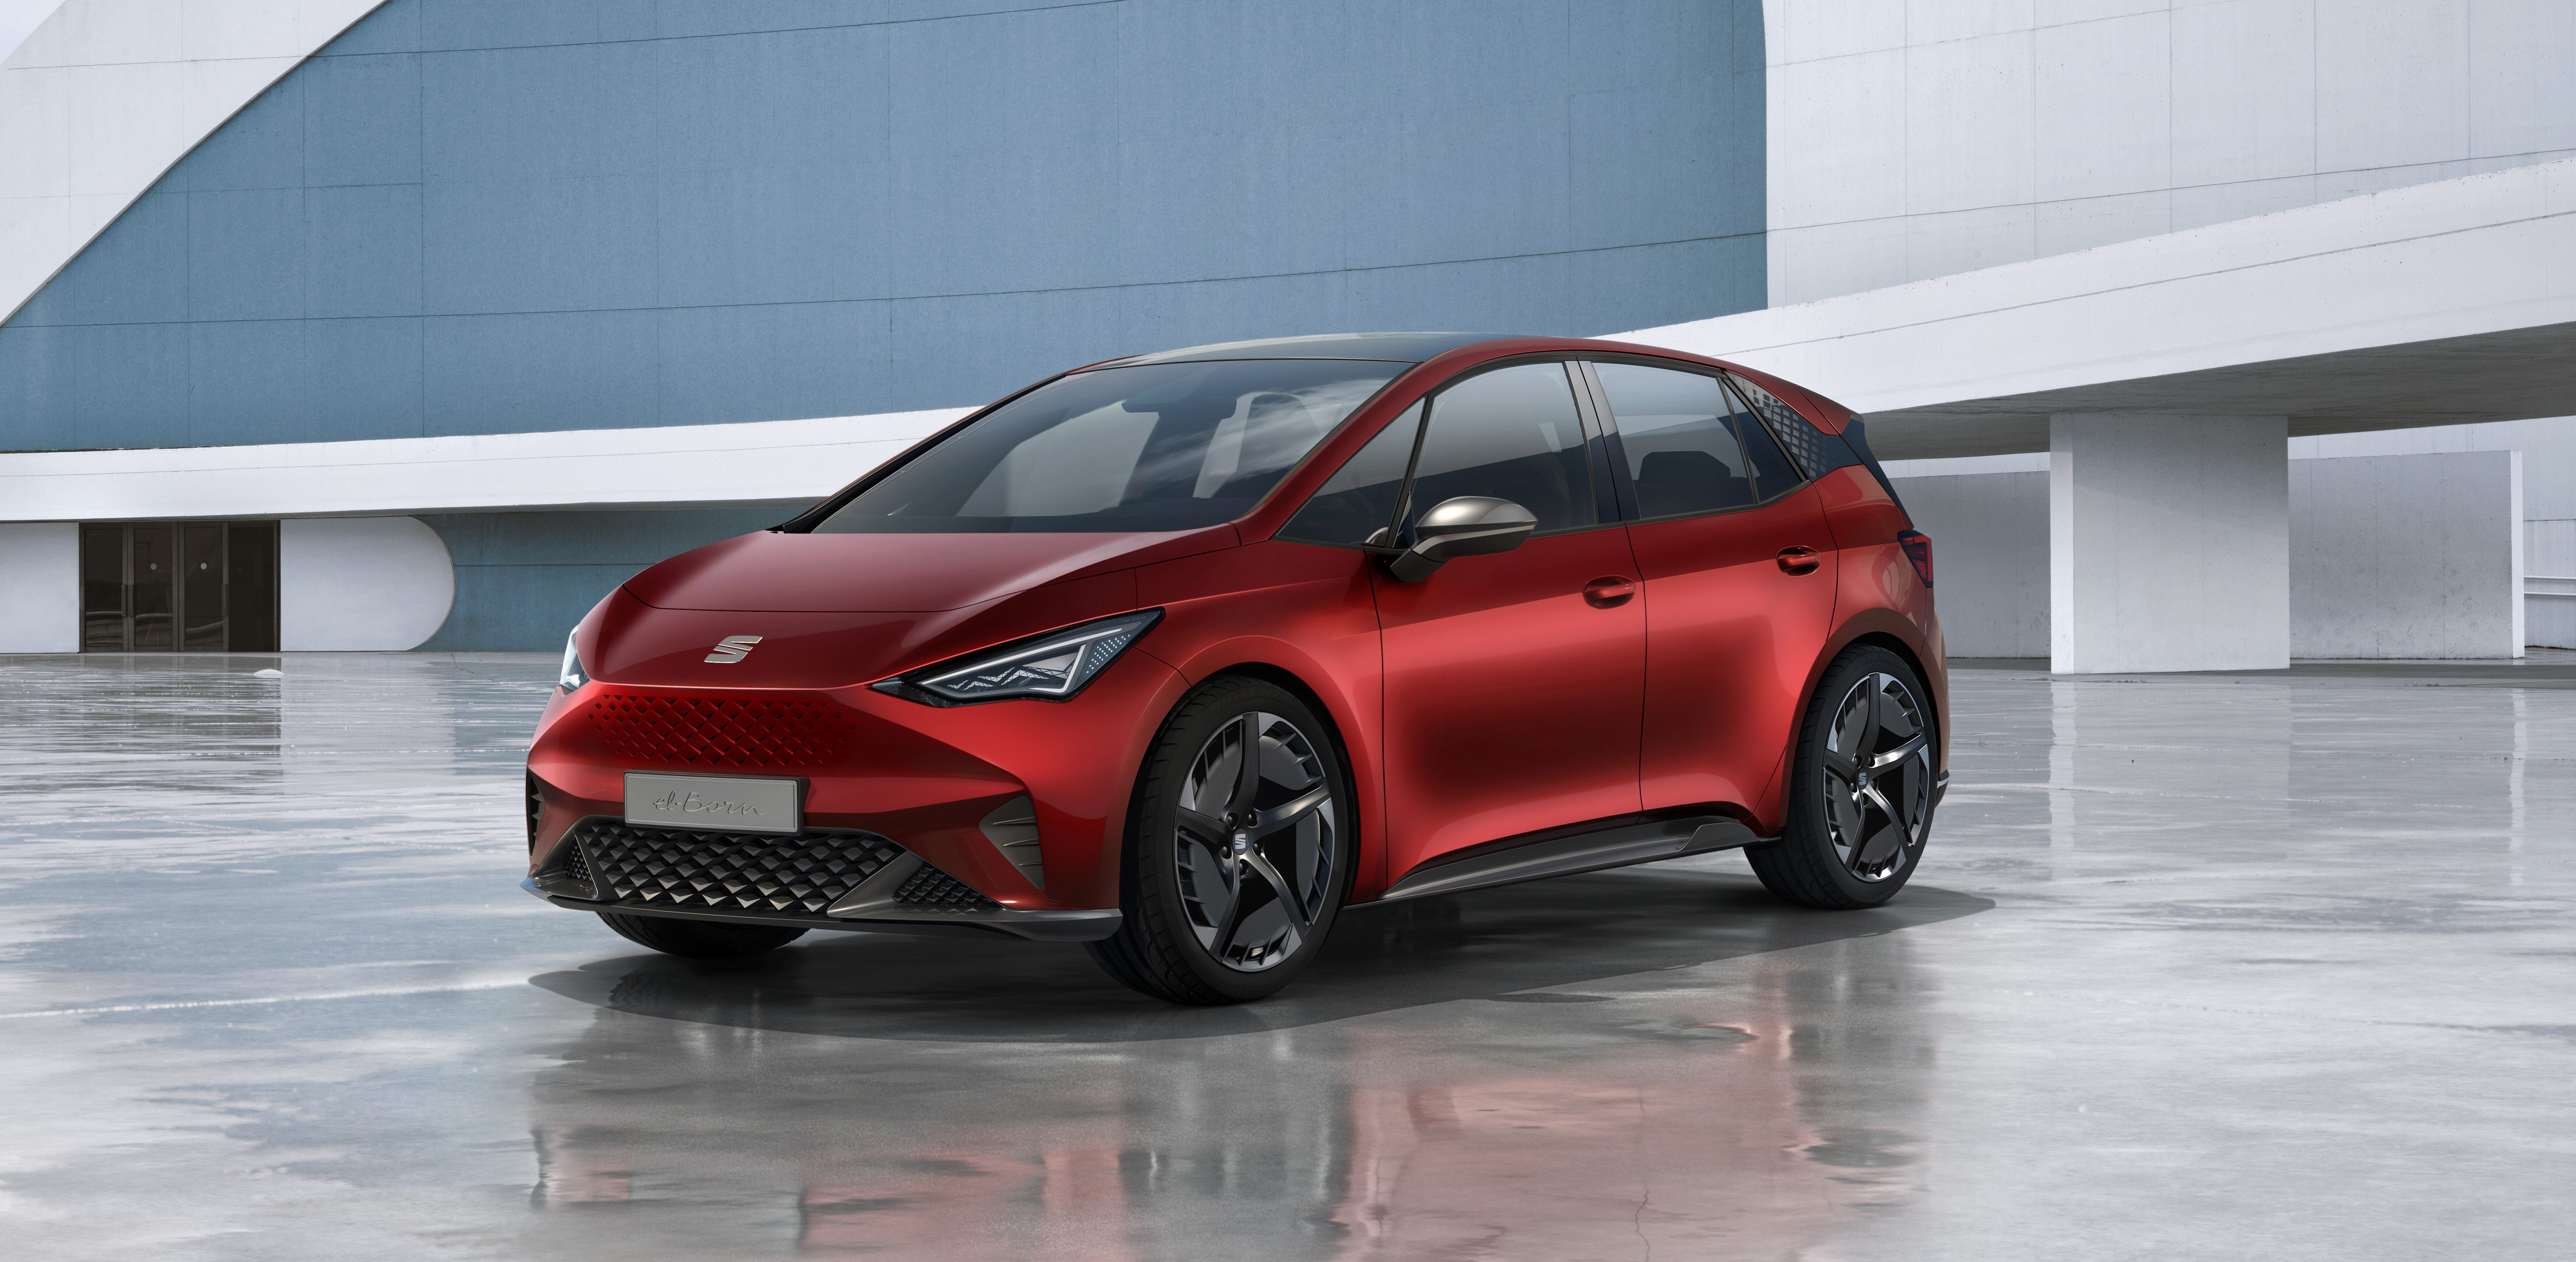 vw u0026 39 s seat unveils sleek new all-electric hatchback with 260 miles of range